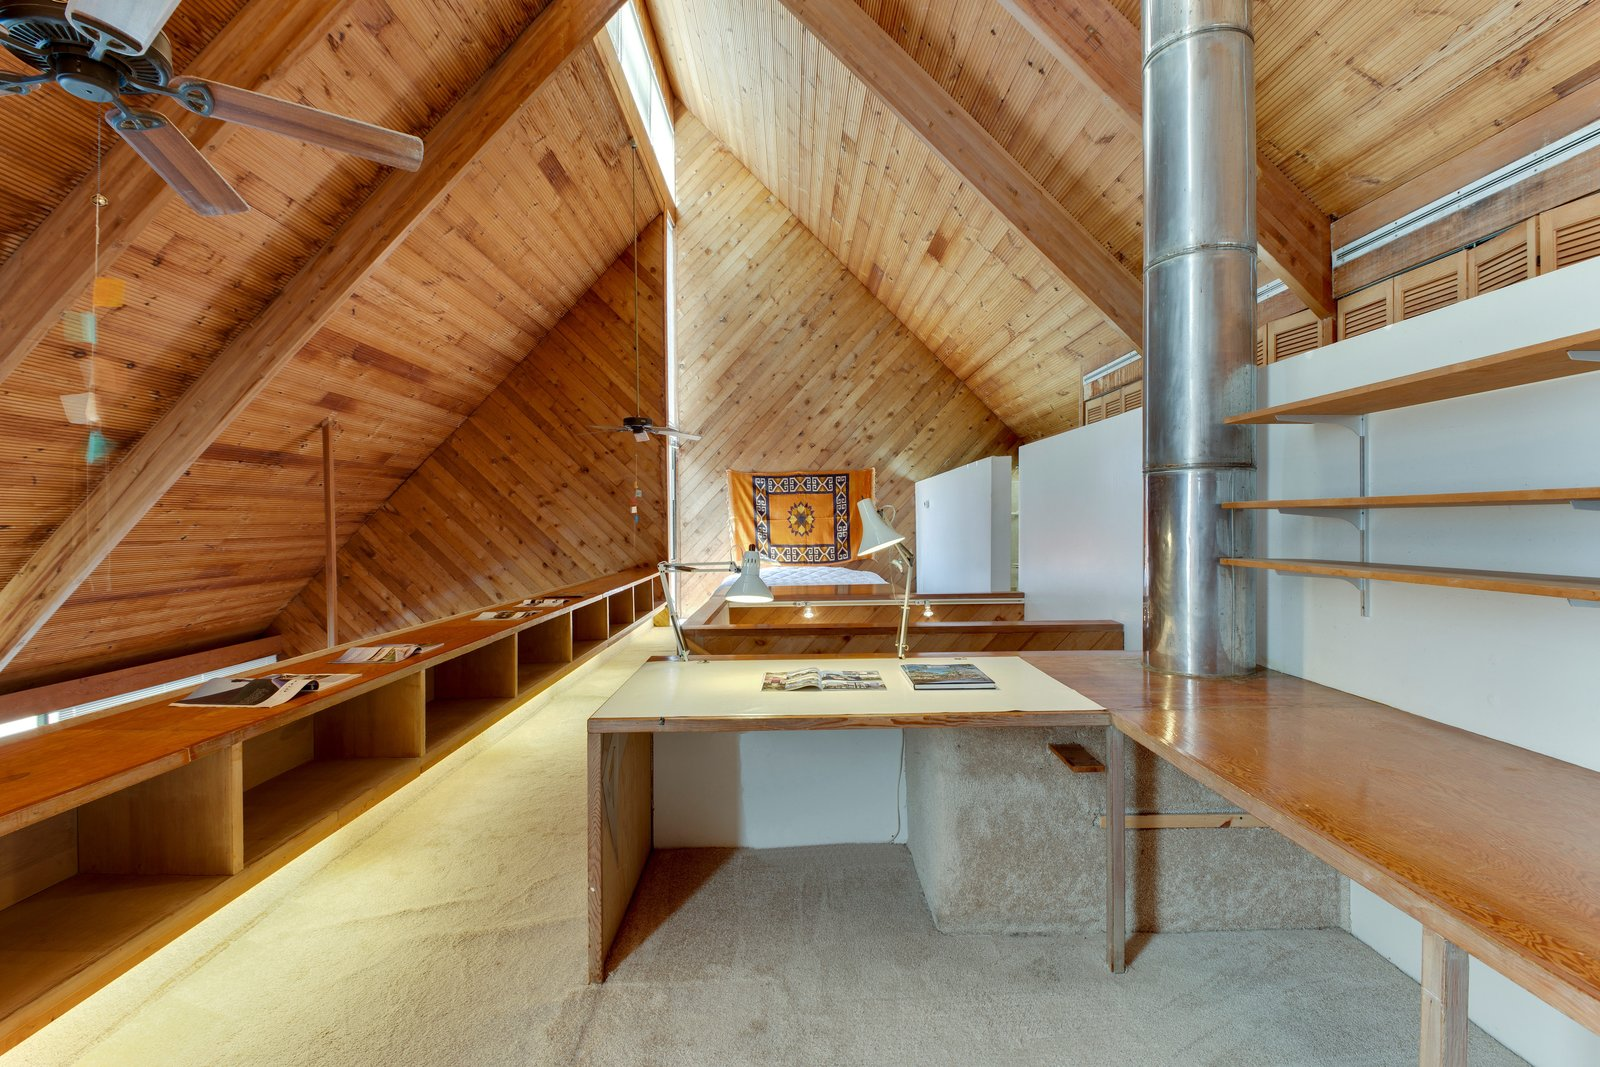 Office, Study Room Type, Lamps, Desk, and Storage  Photo 10 of 13 in A Renowned Florida Architect's Geometric Family Home Hits the Market For the First Time